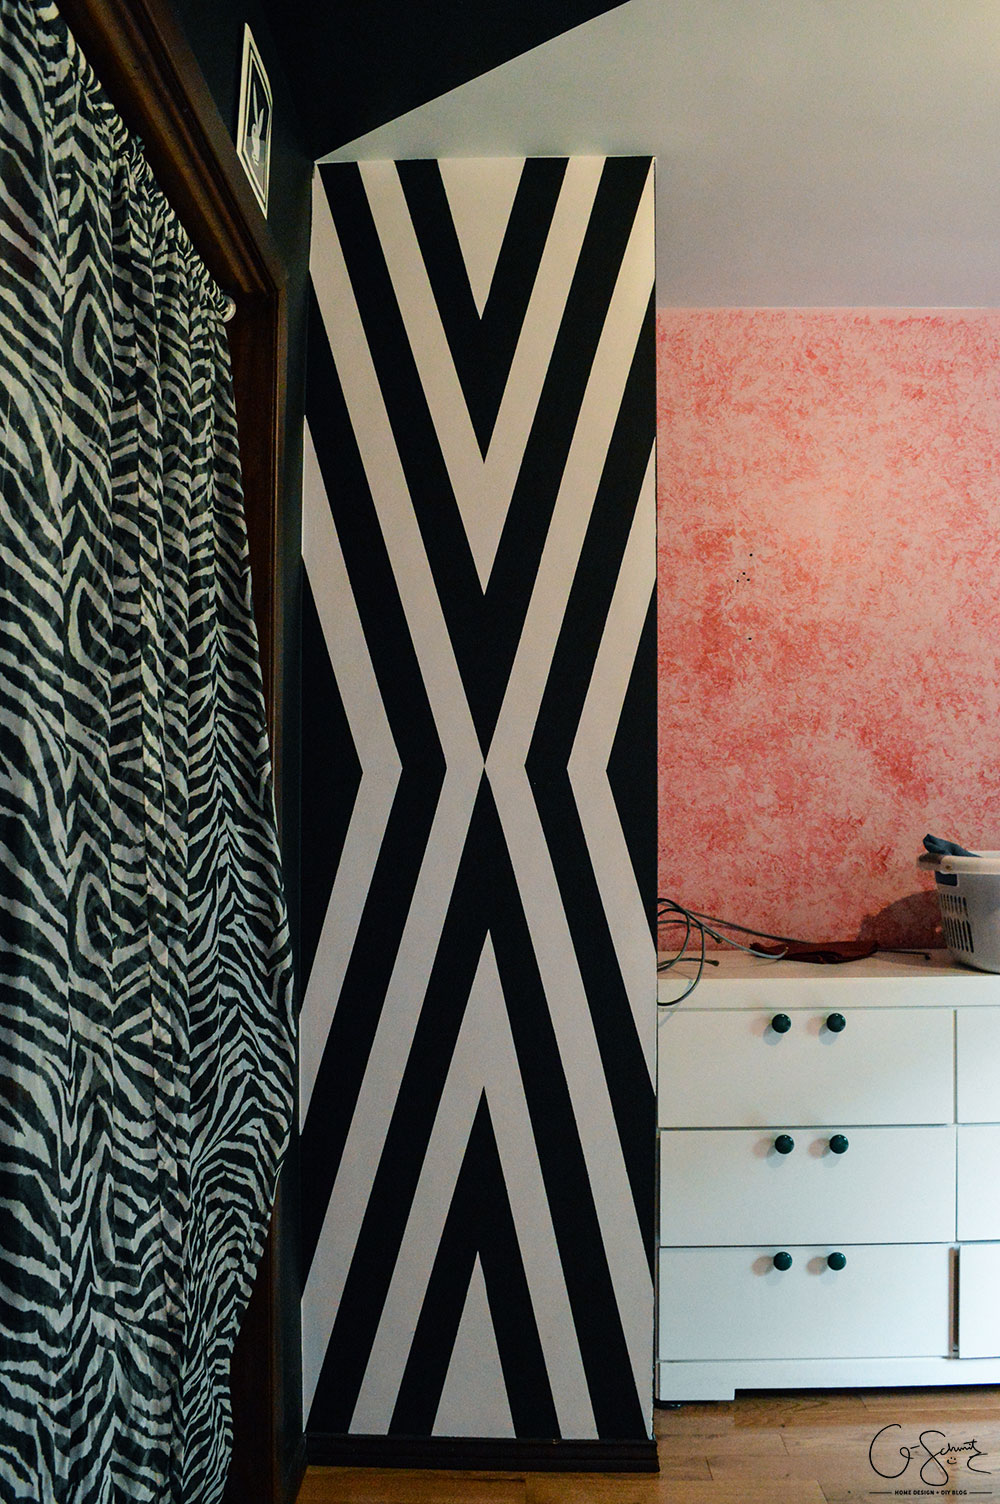 Are you ready to add some bold colour and stripes to your home décor? Check out my first major DIY project (my bold teen bedroom) – and feel free to incorporate some of this style into your girls' bedroom. Actually, bright colours and contrasts are perfect for any kids room!